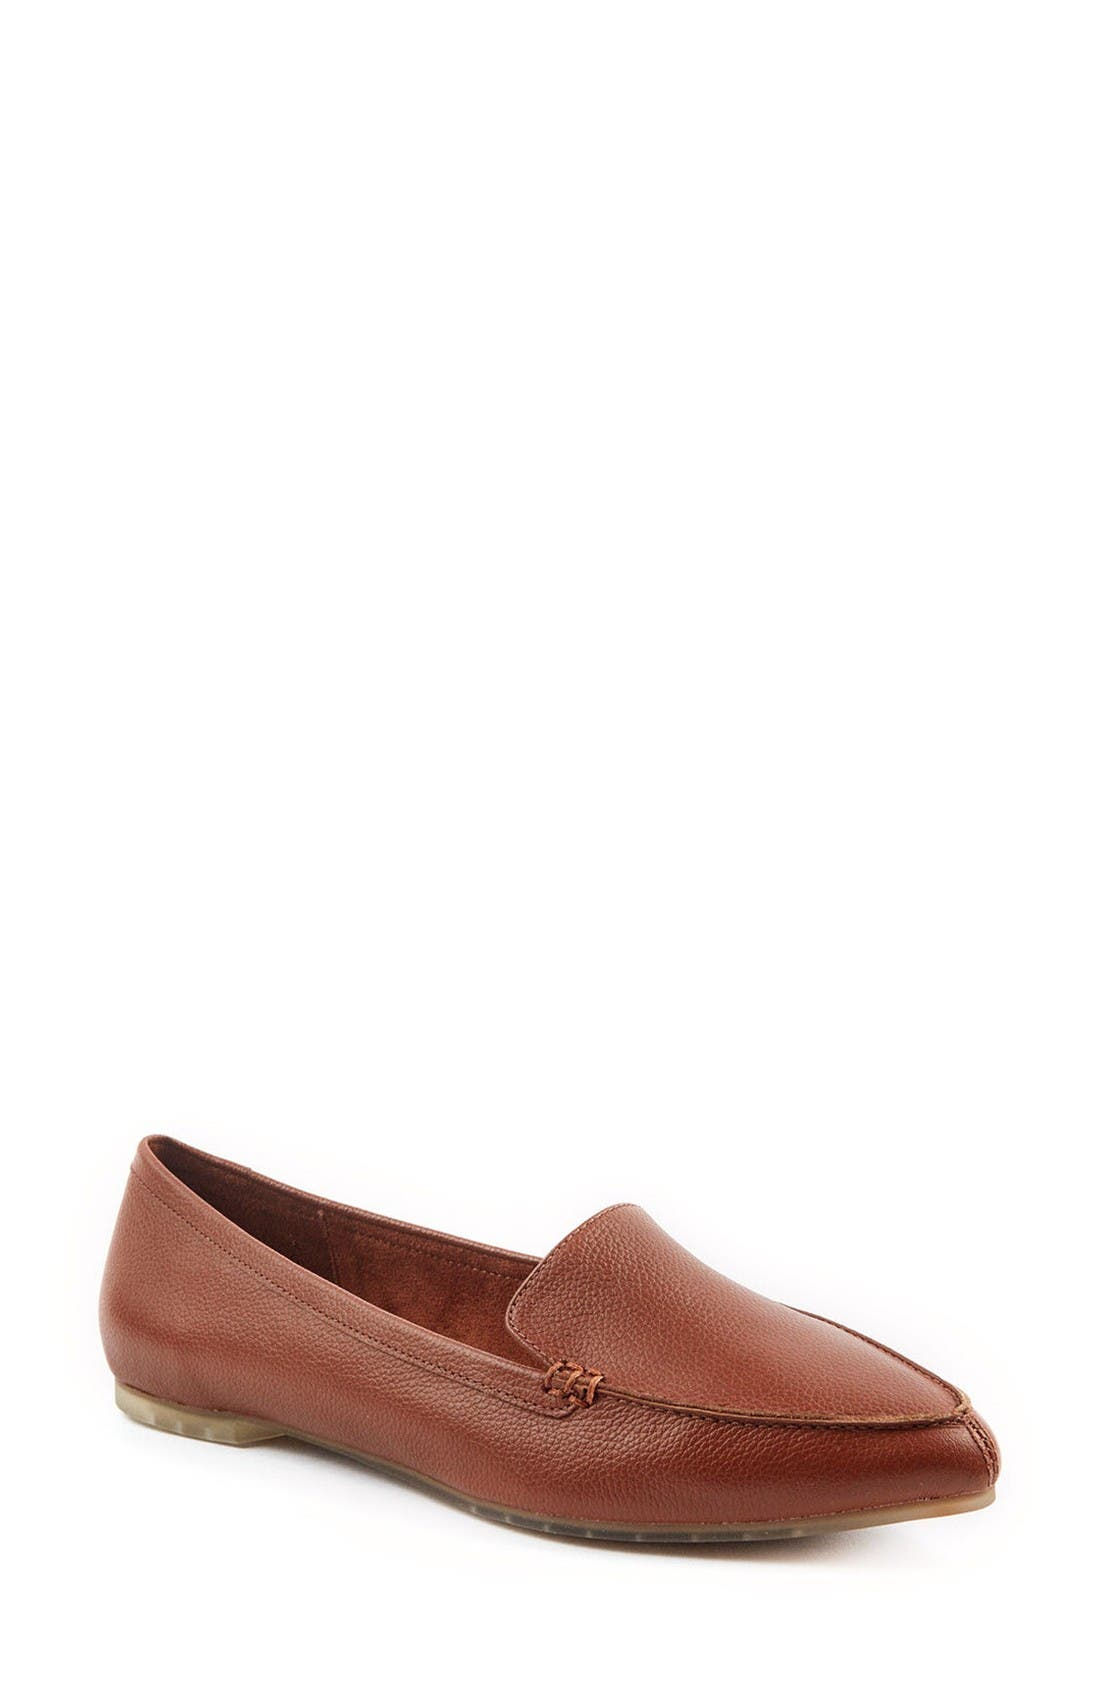 Main Image - Me Too Audra Loafer Flat (Women)